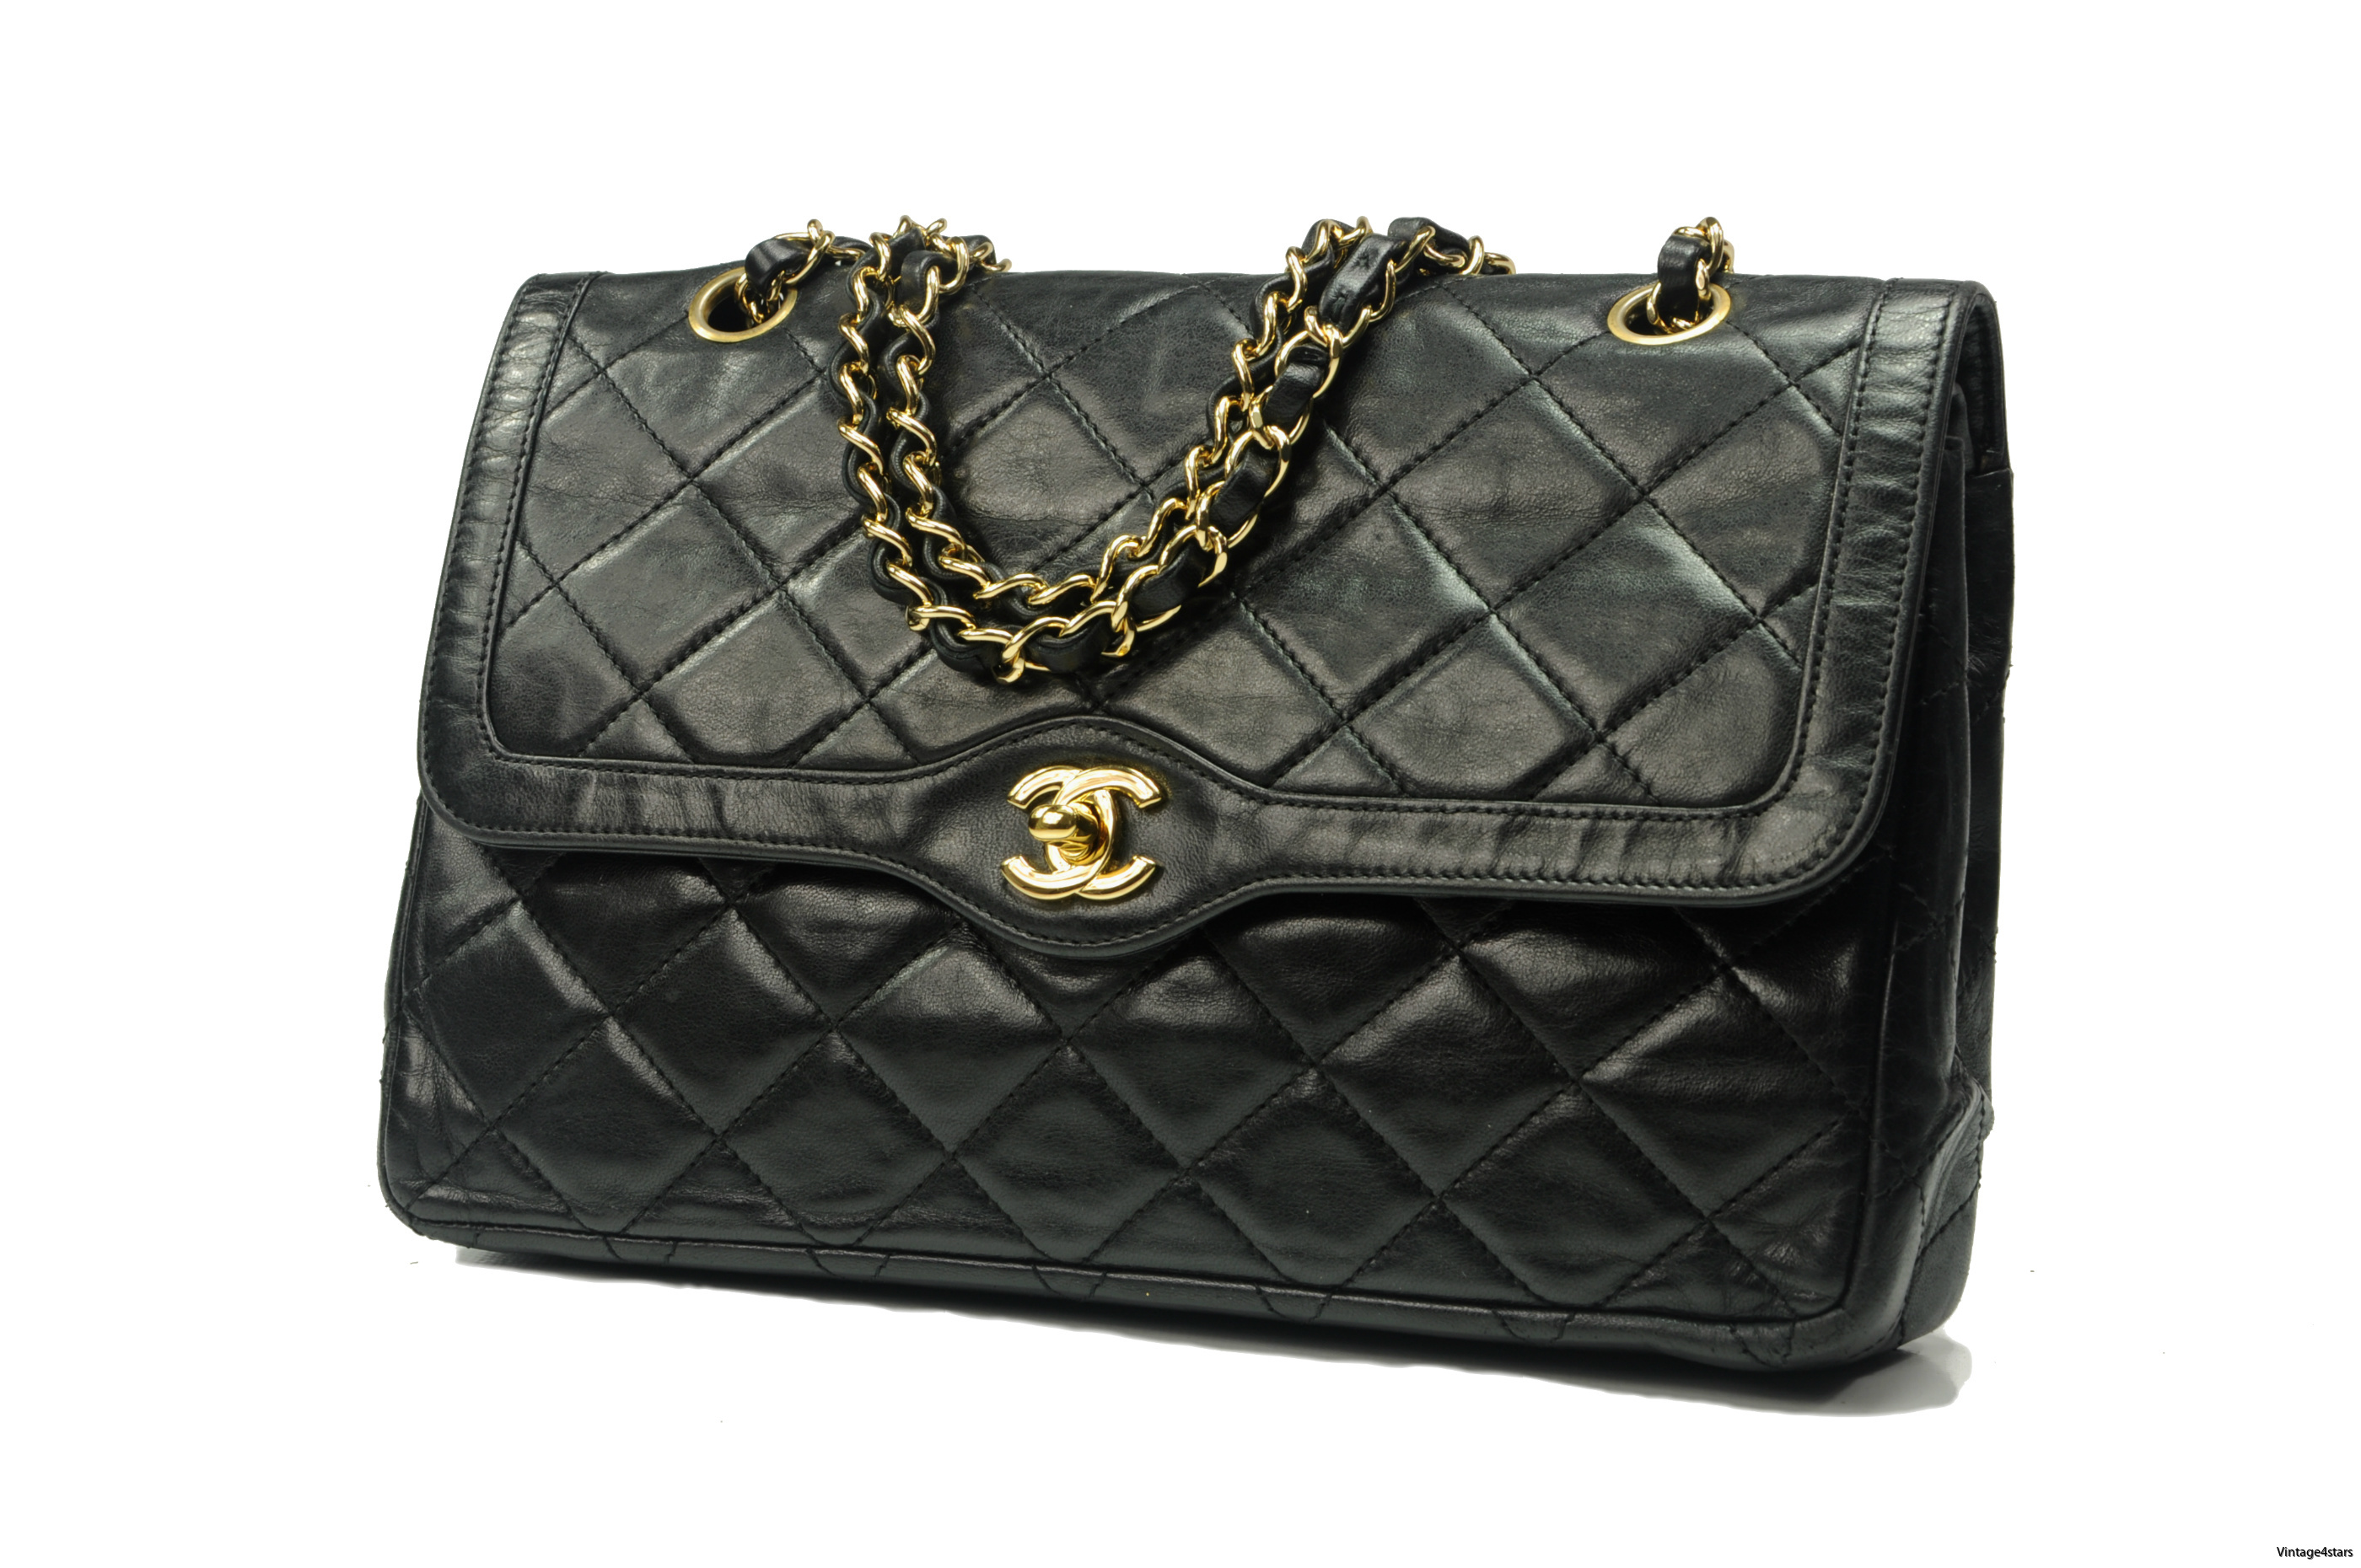 CHANEL Double Flap Paris 1